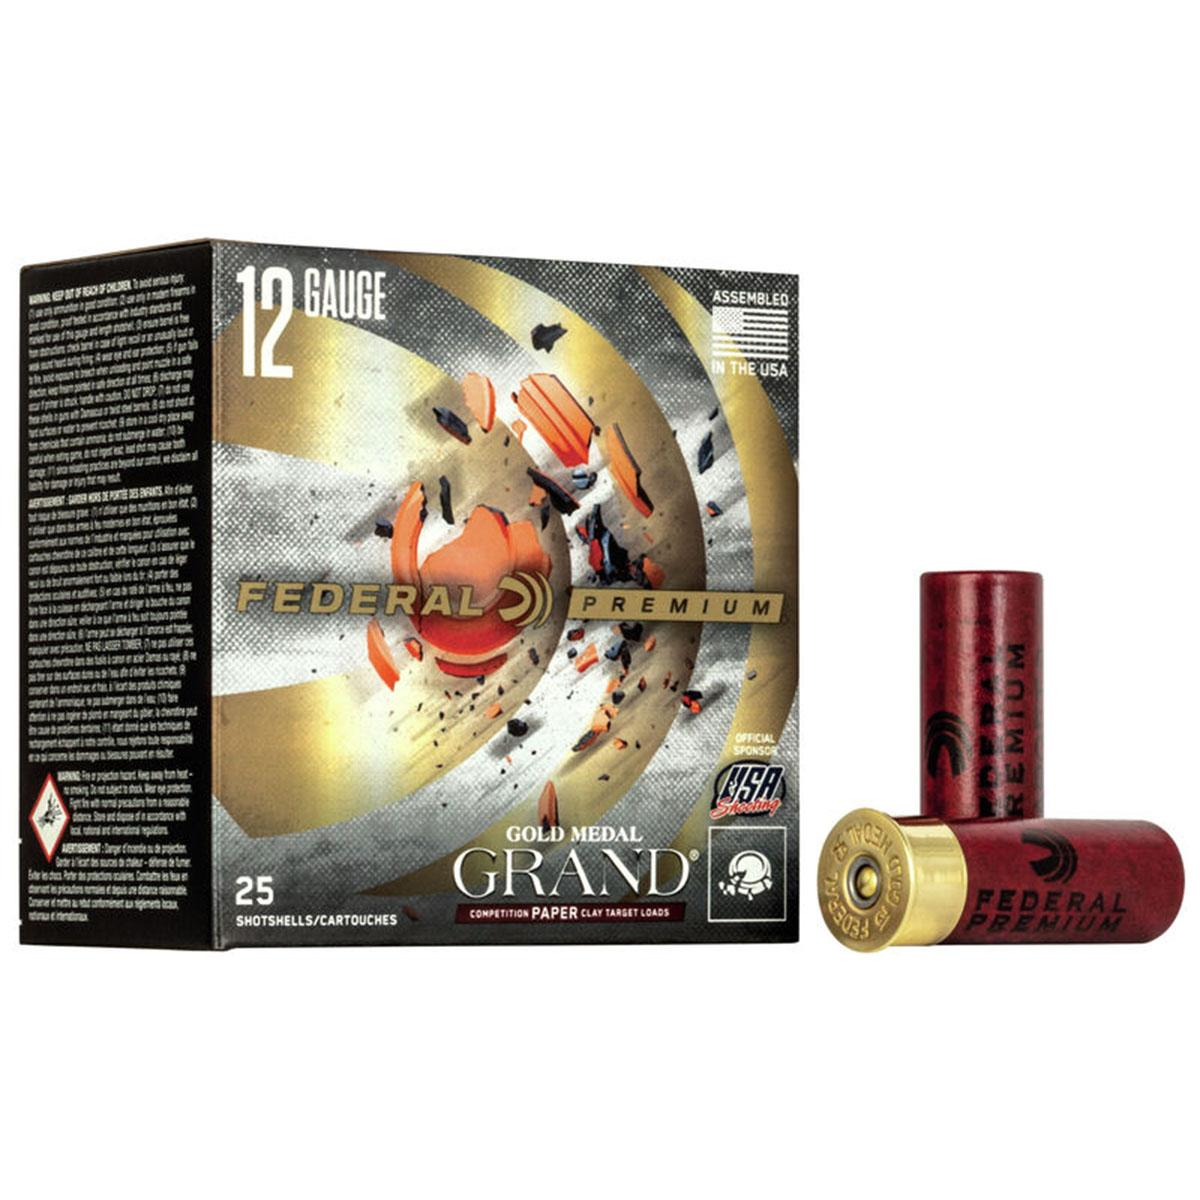 "Federal Gold Medal Grand Paper Target Shotshells, 12 GA 2 3/4"" 1 1/8oz 1200FPS_1.jpg"